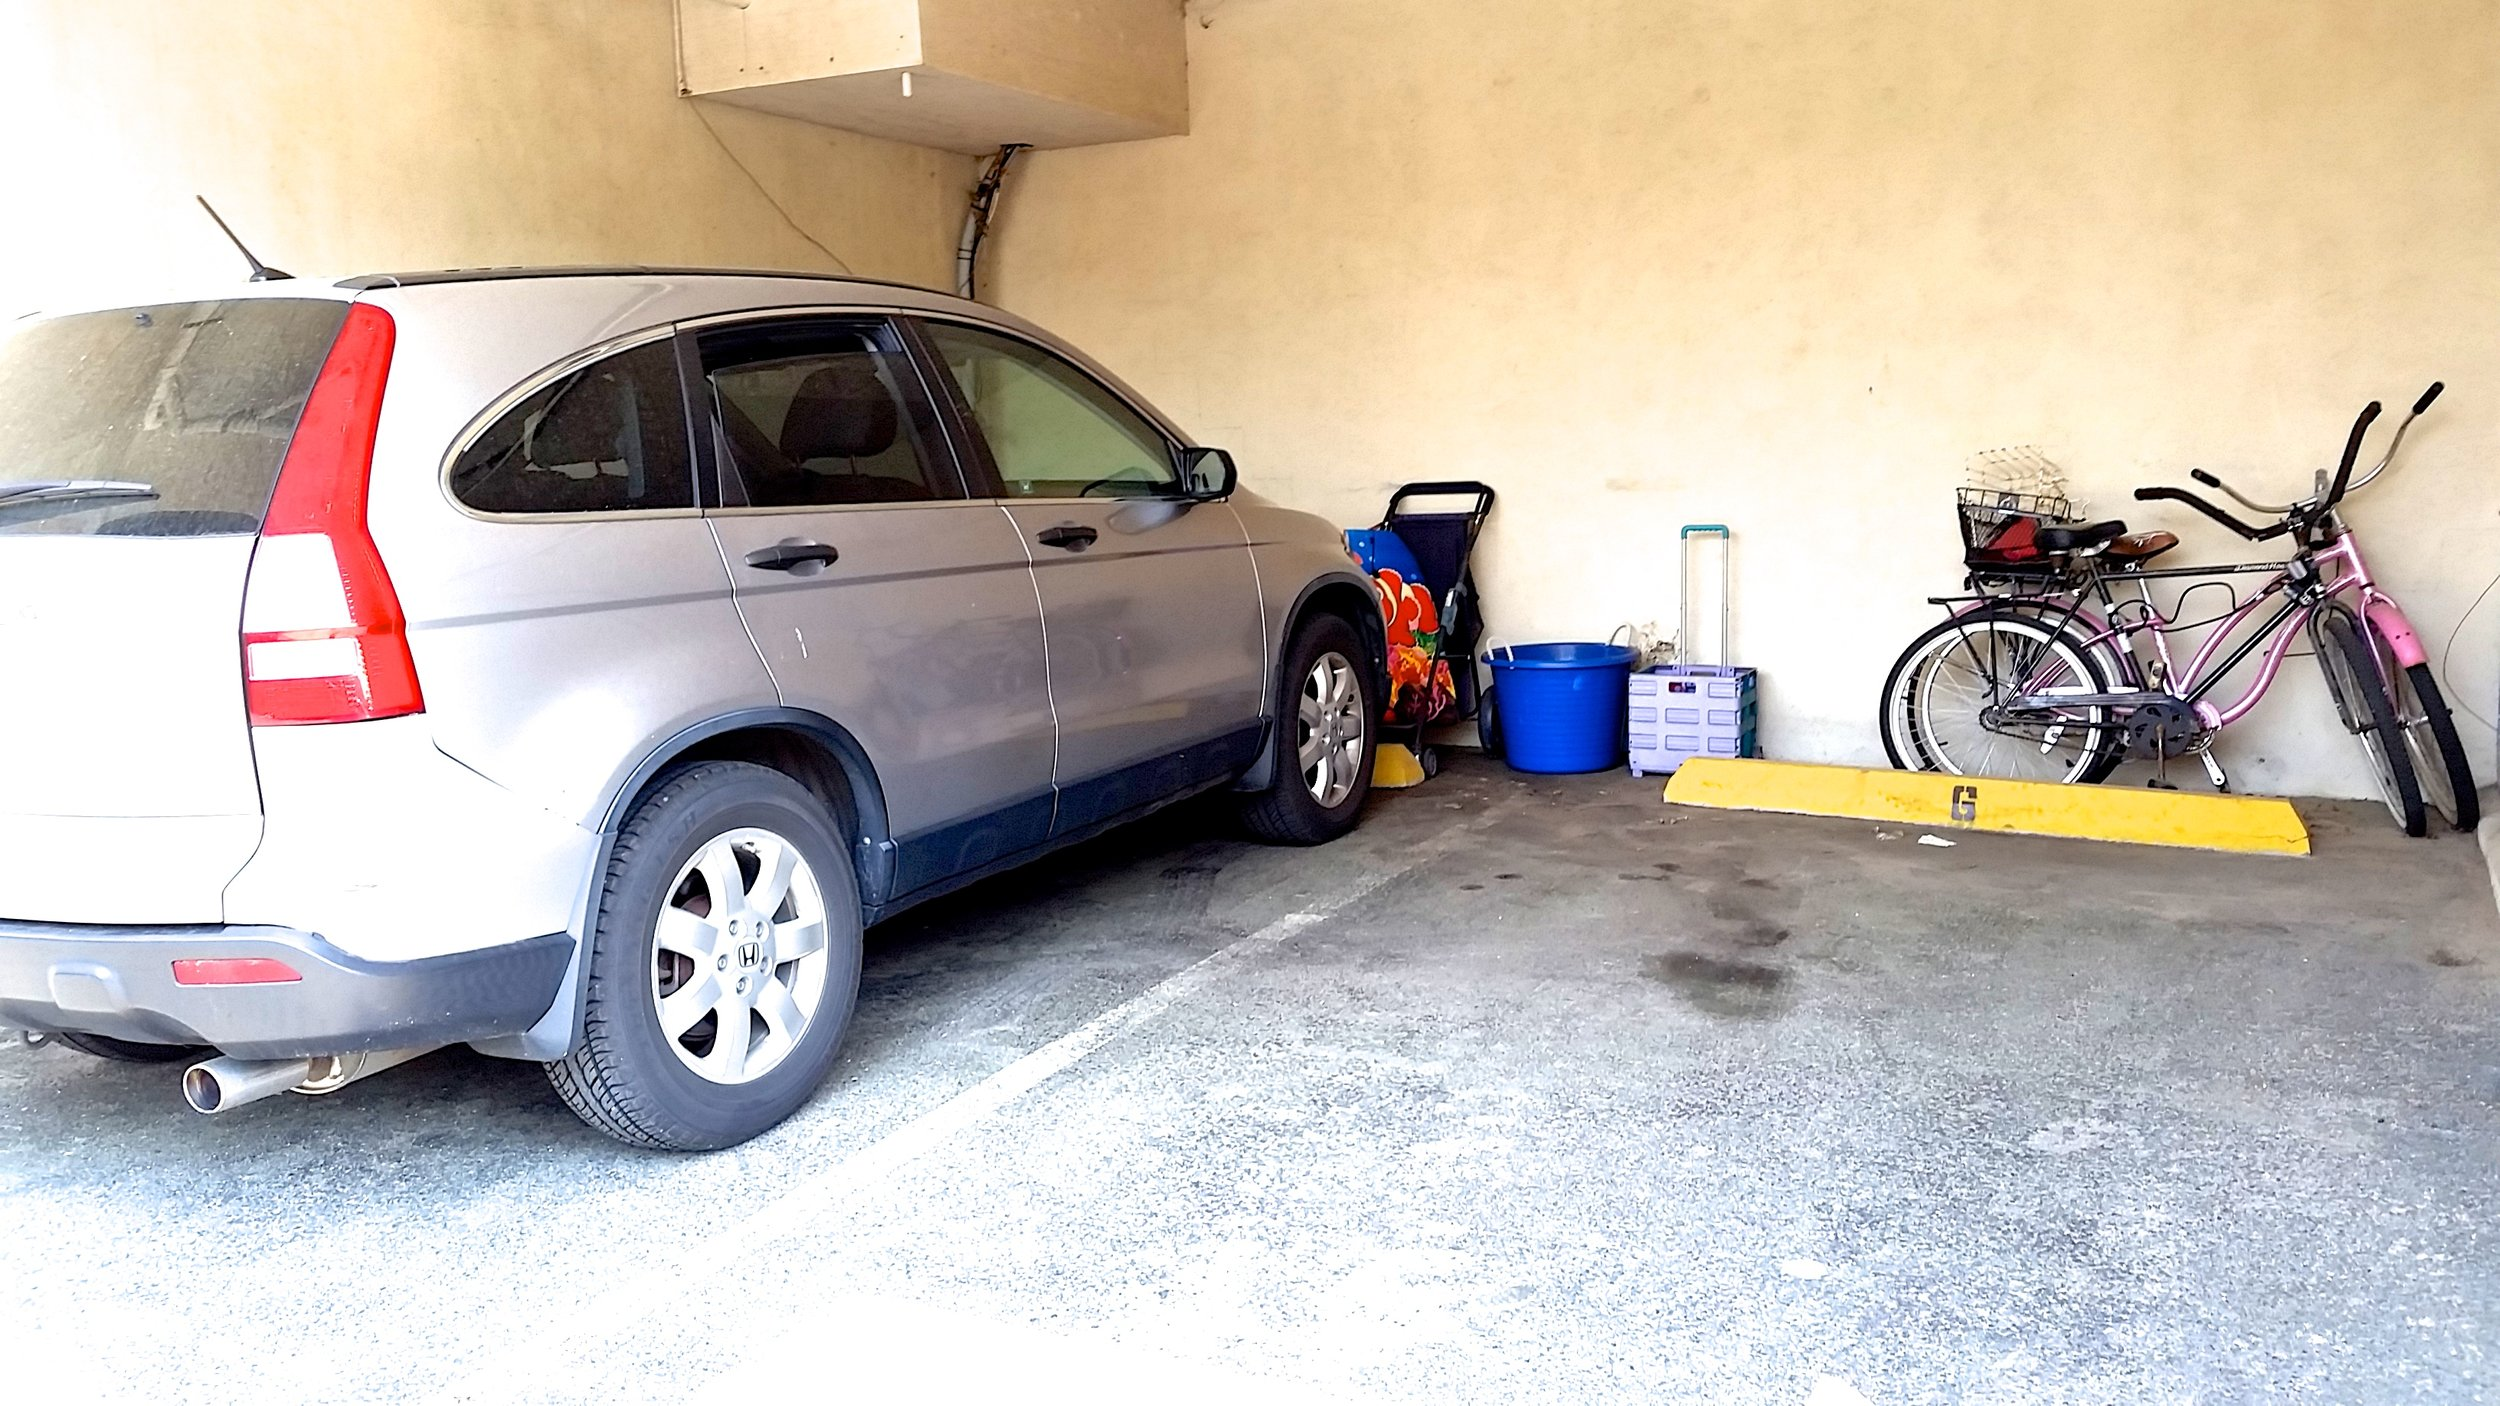 Two Parking Spots, Two Bikes and Beach Chairs Available for Use